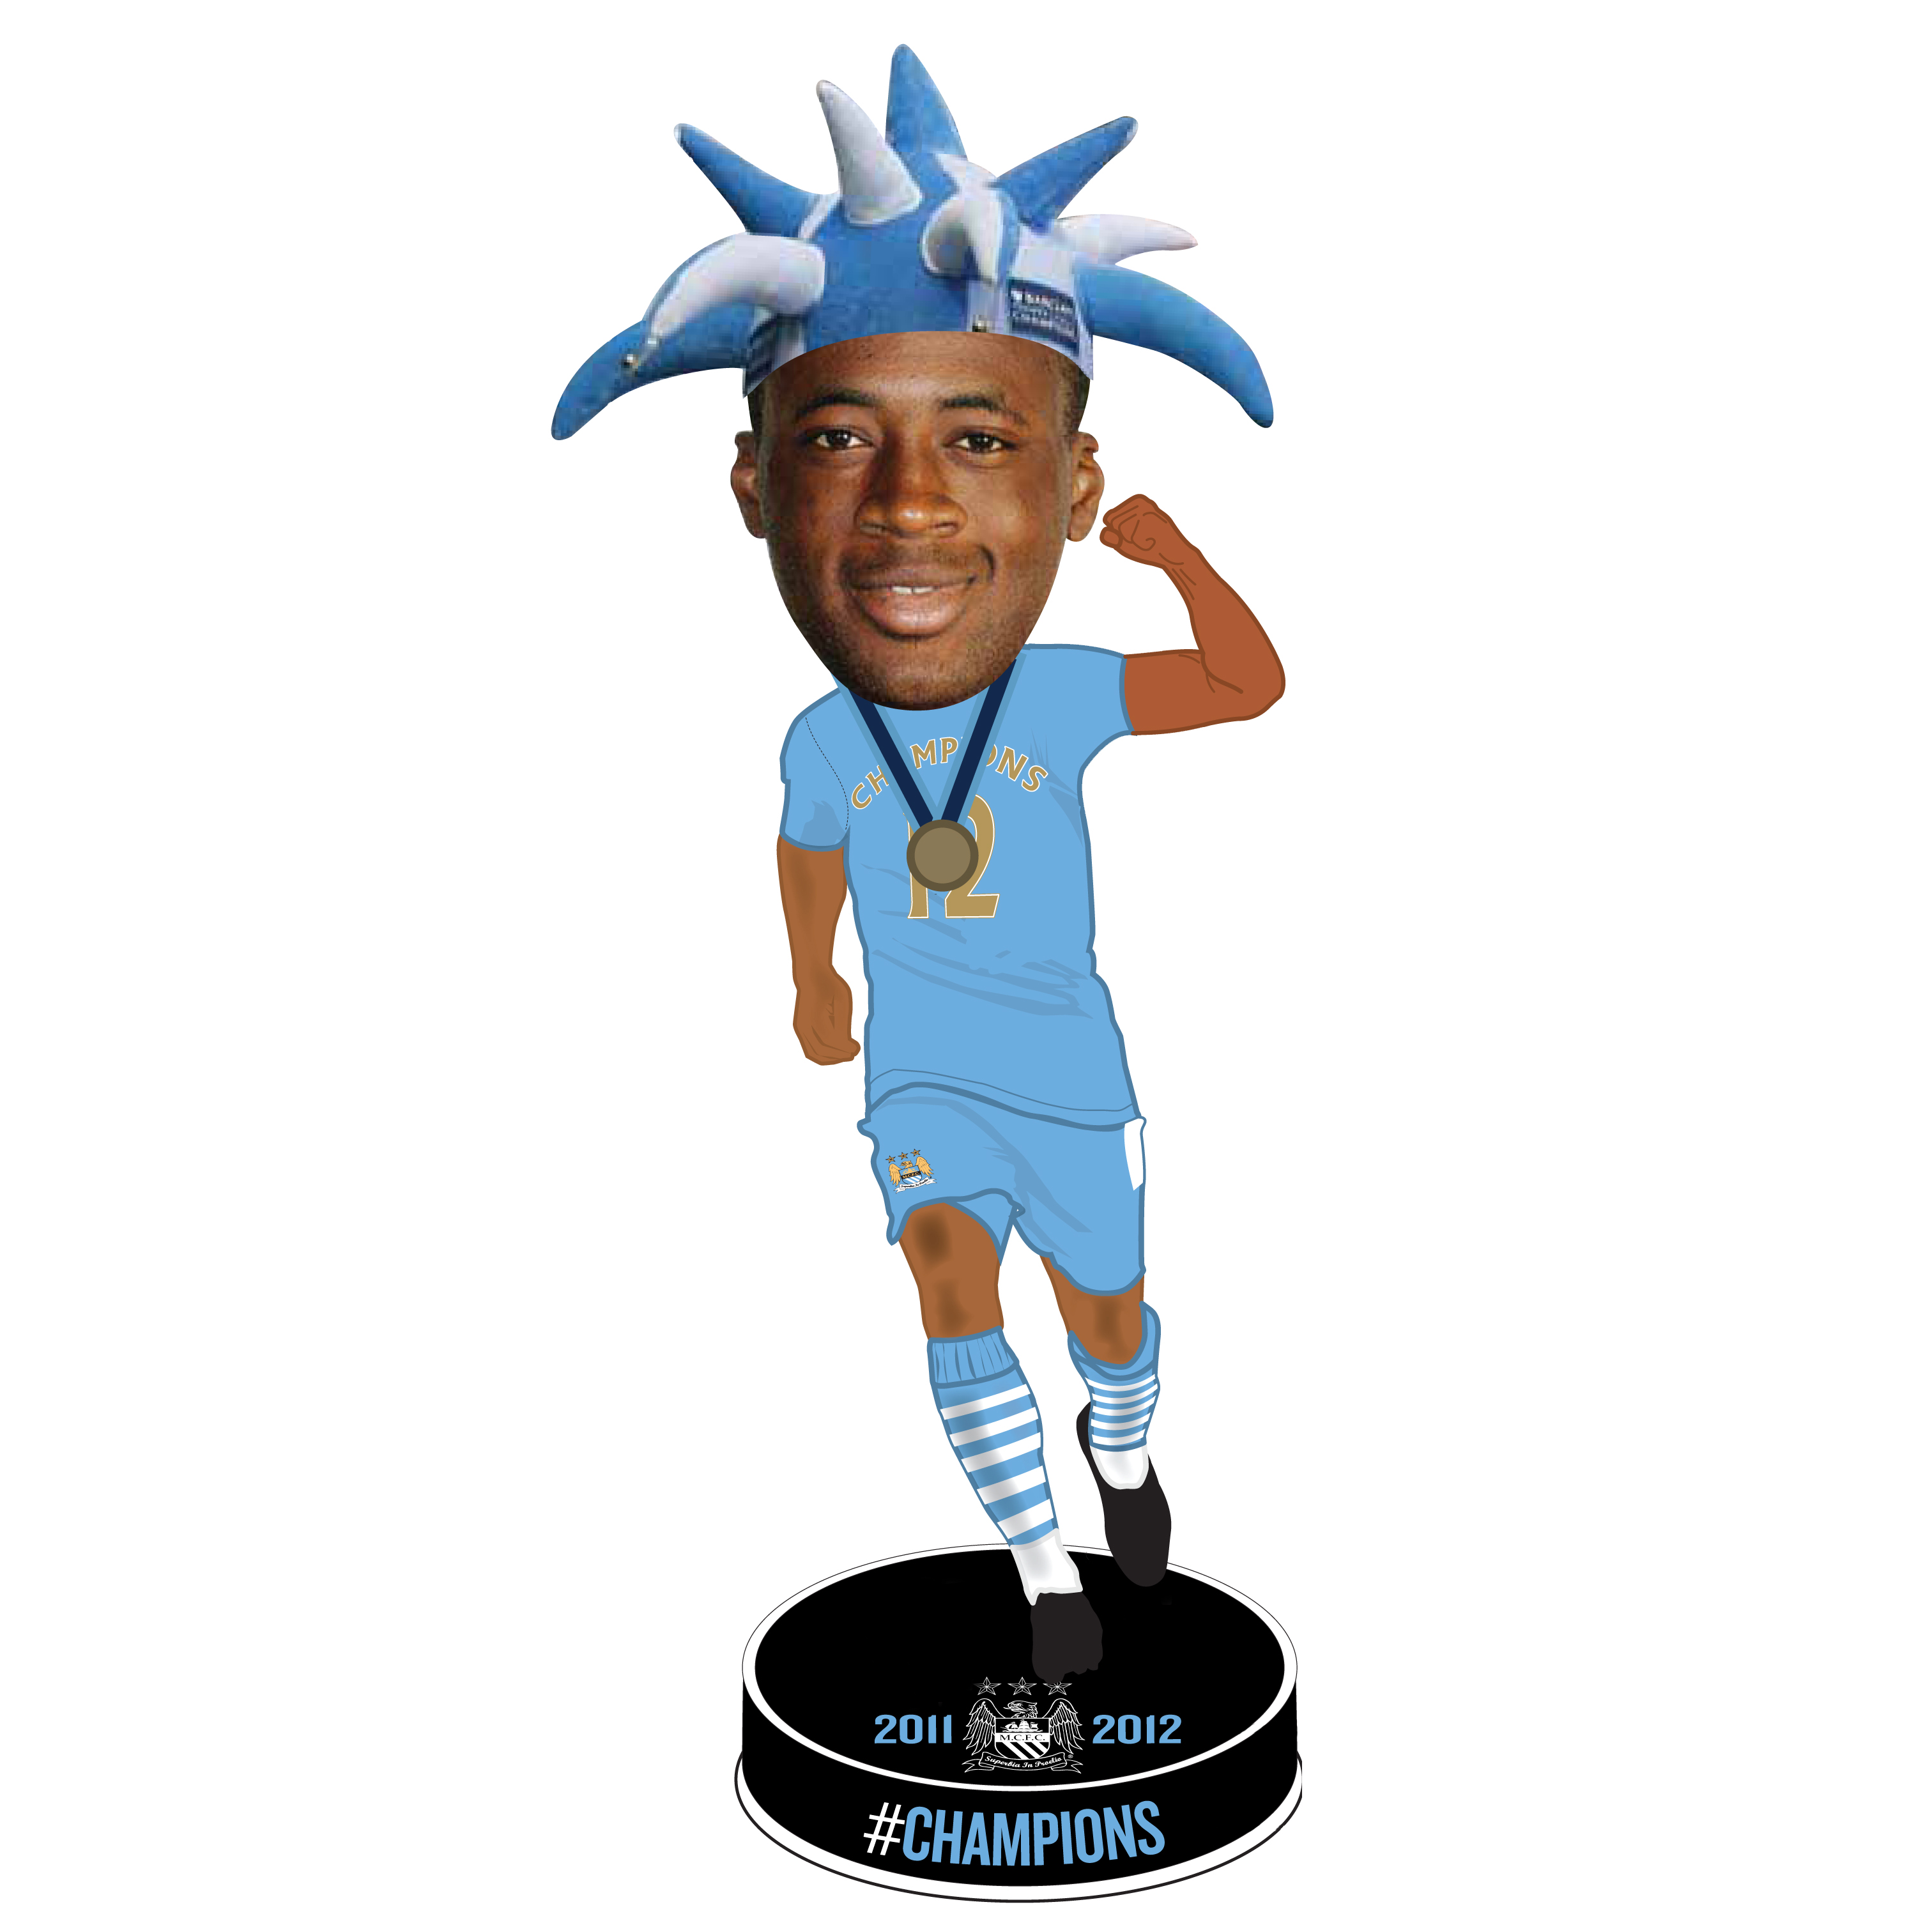 Manchester City #Champions 11/12 Toure Bobble Head